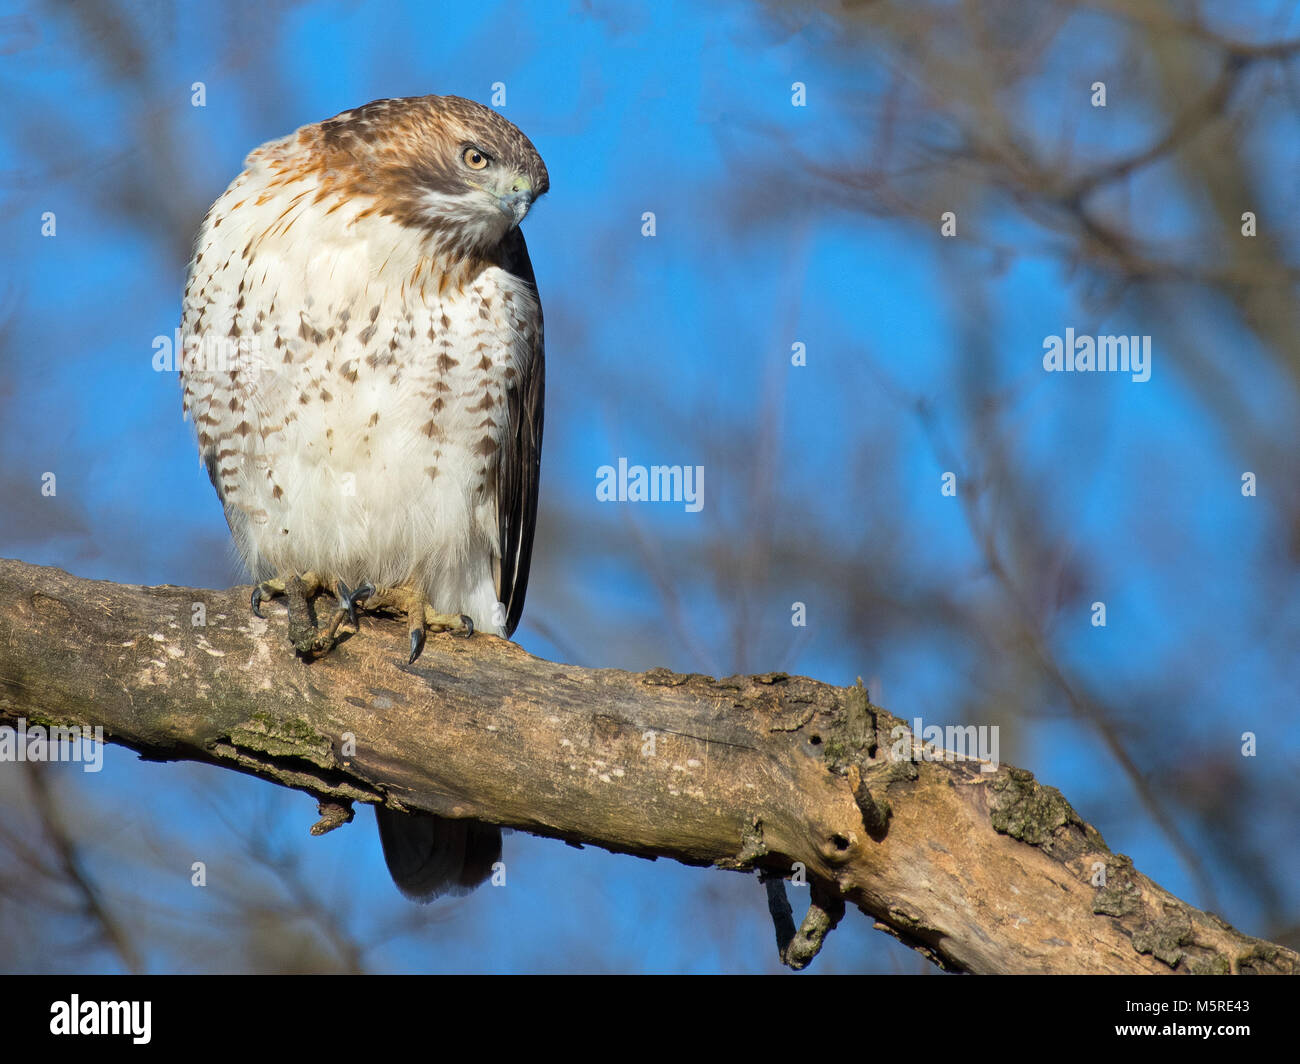 Red-tailed Hawk - Stock Image